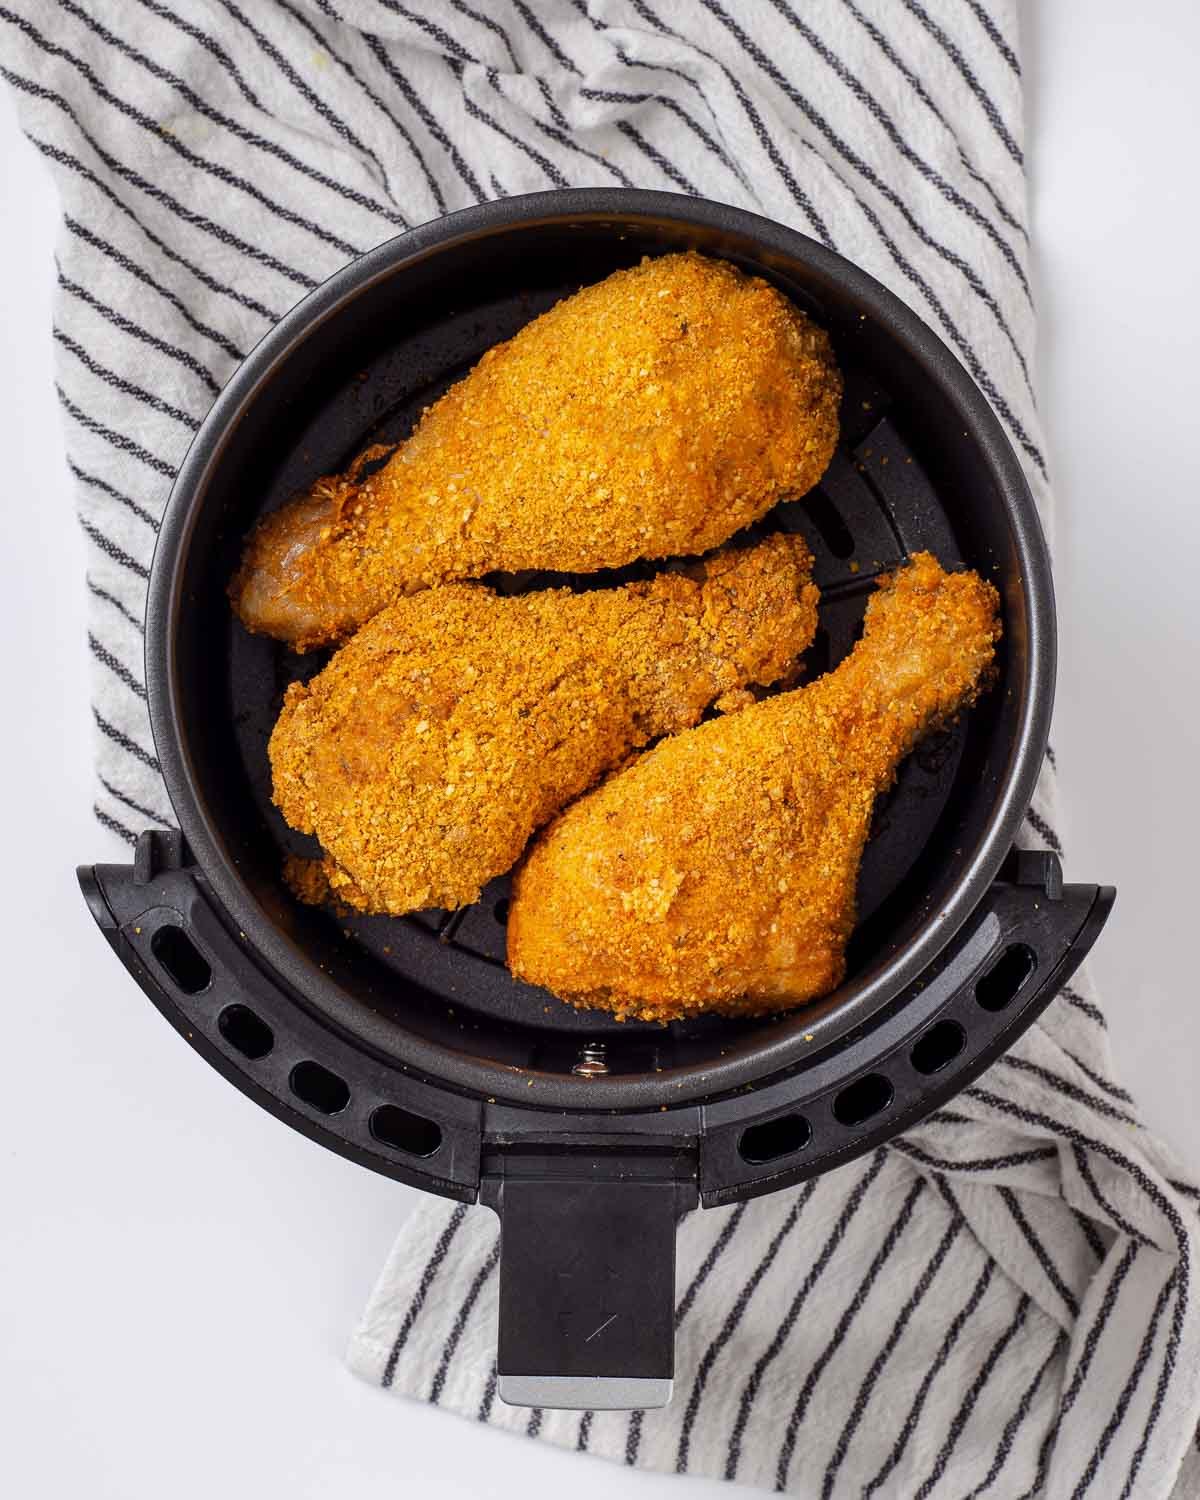 Placing the drumsticks into the air fryer.